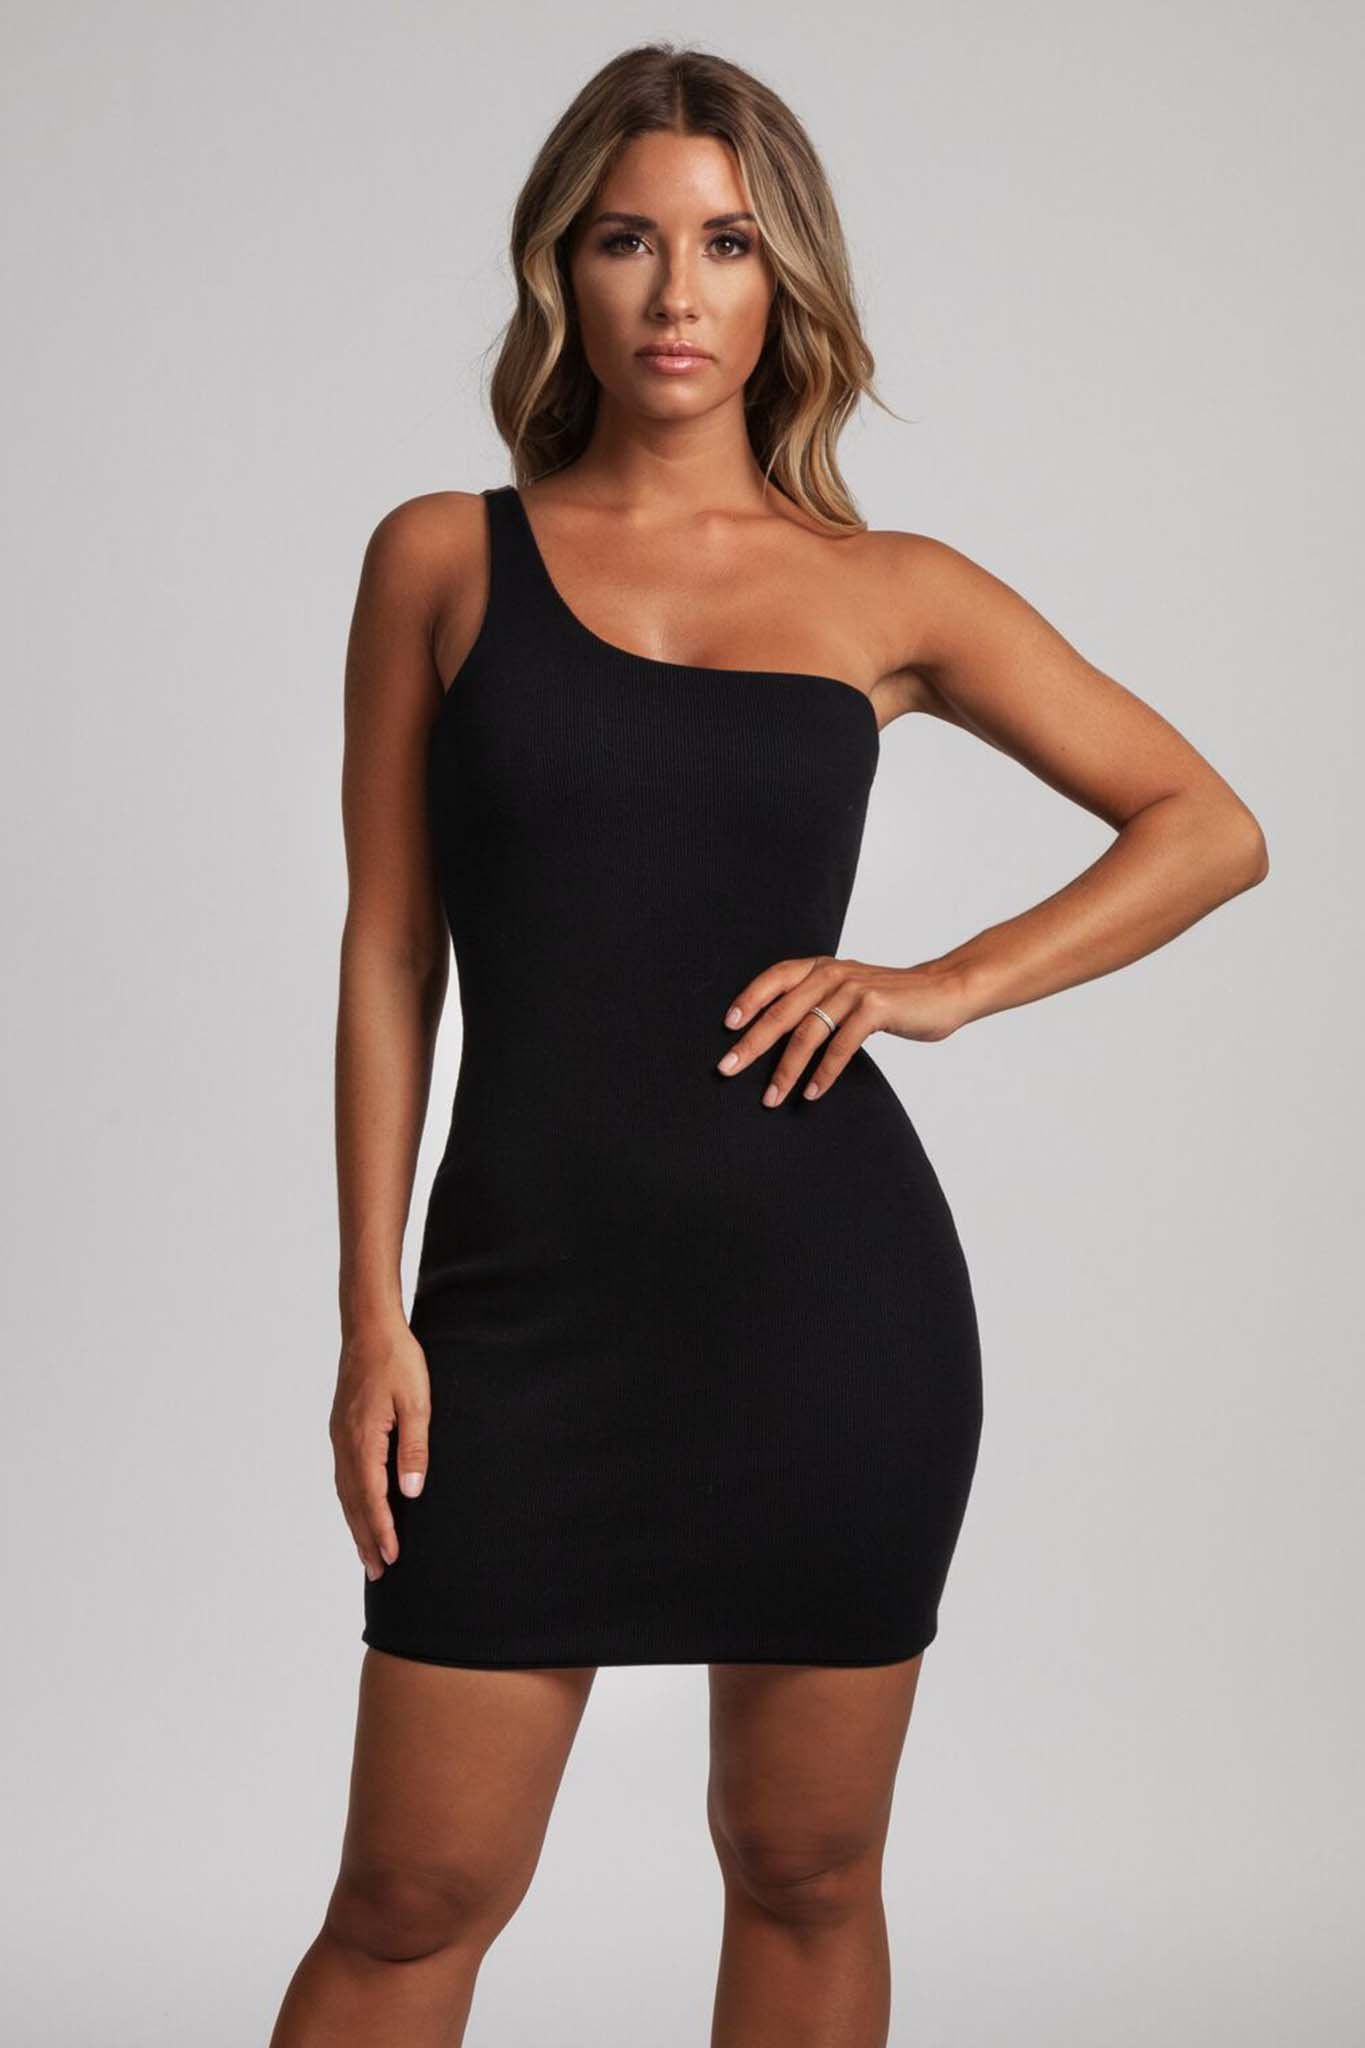 457b49b46a699 Scarlett One-Shoulder Bodycon Rib Mini Dress - Black - MESHKI